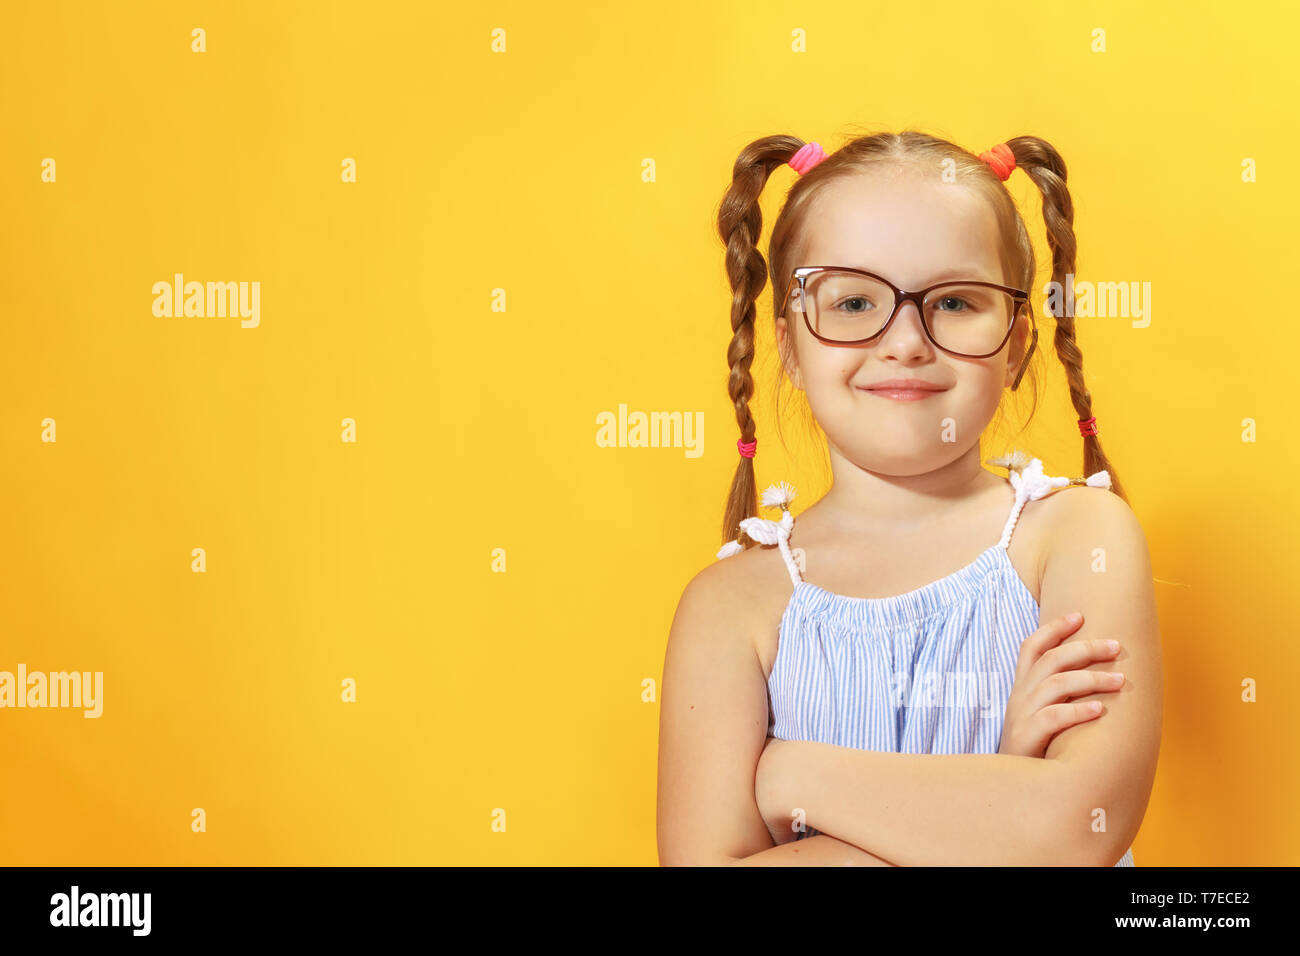 5589b50f170c Portrait of a funny little girl of preschool child with glasses on a yellow  background.